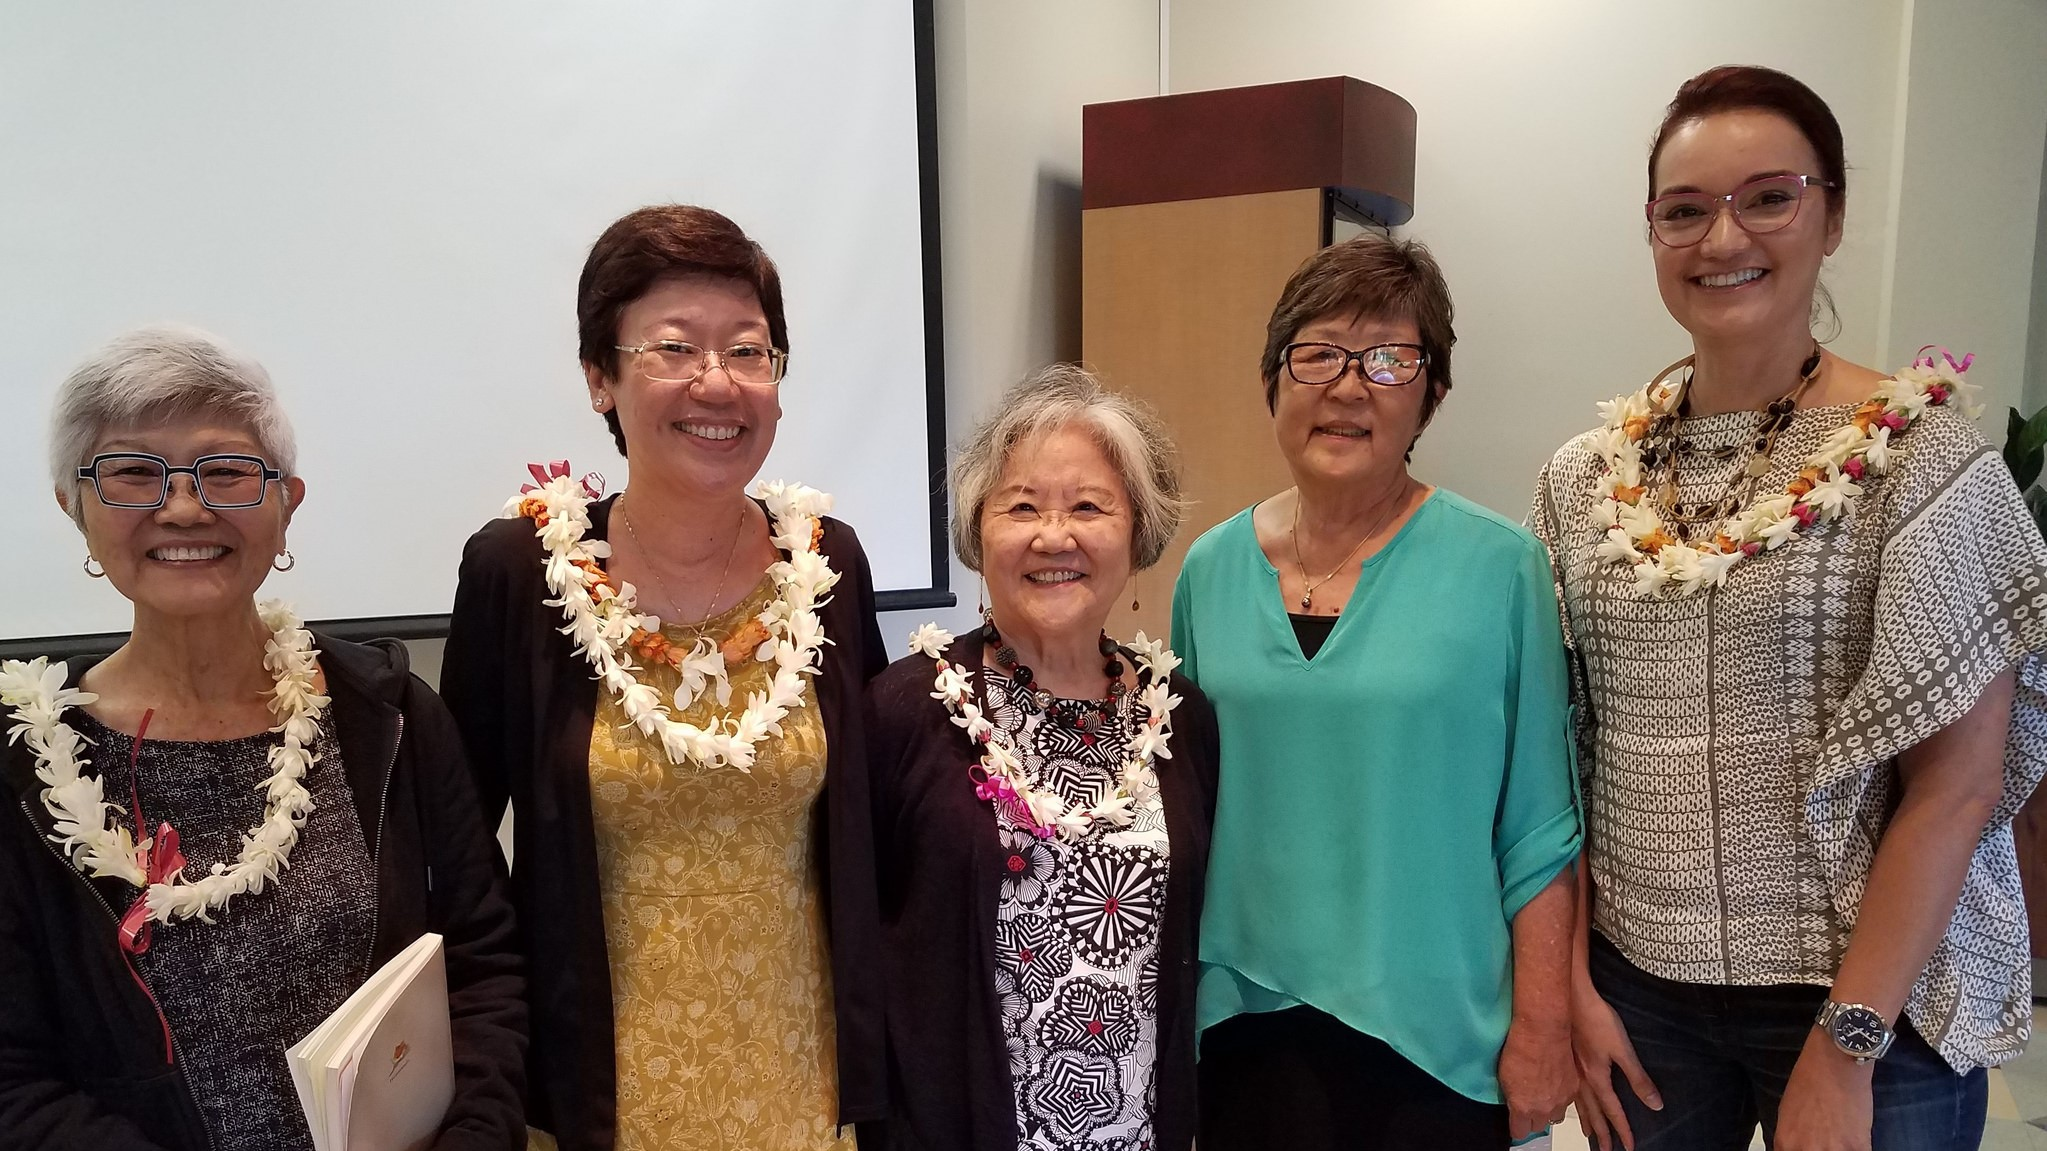 (Left to right) Juliet S. Kono, Jean Yamasaki Toyama, Ann Inoshita, Marcia Sakai, and Christy Passion stand together for photo.